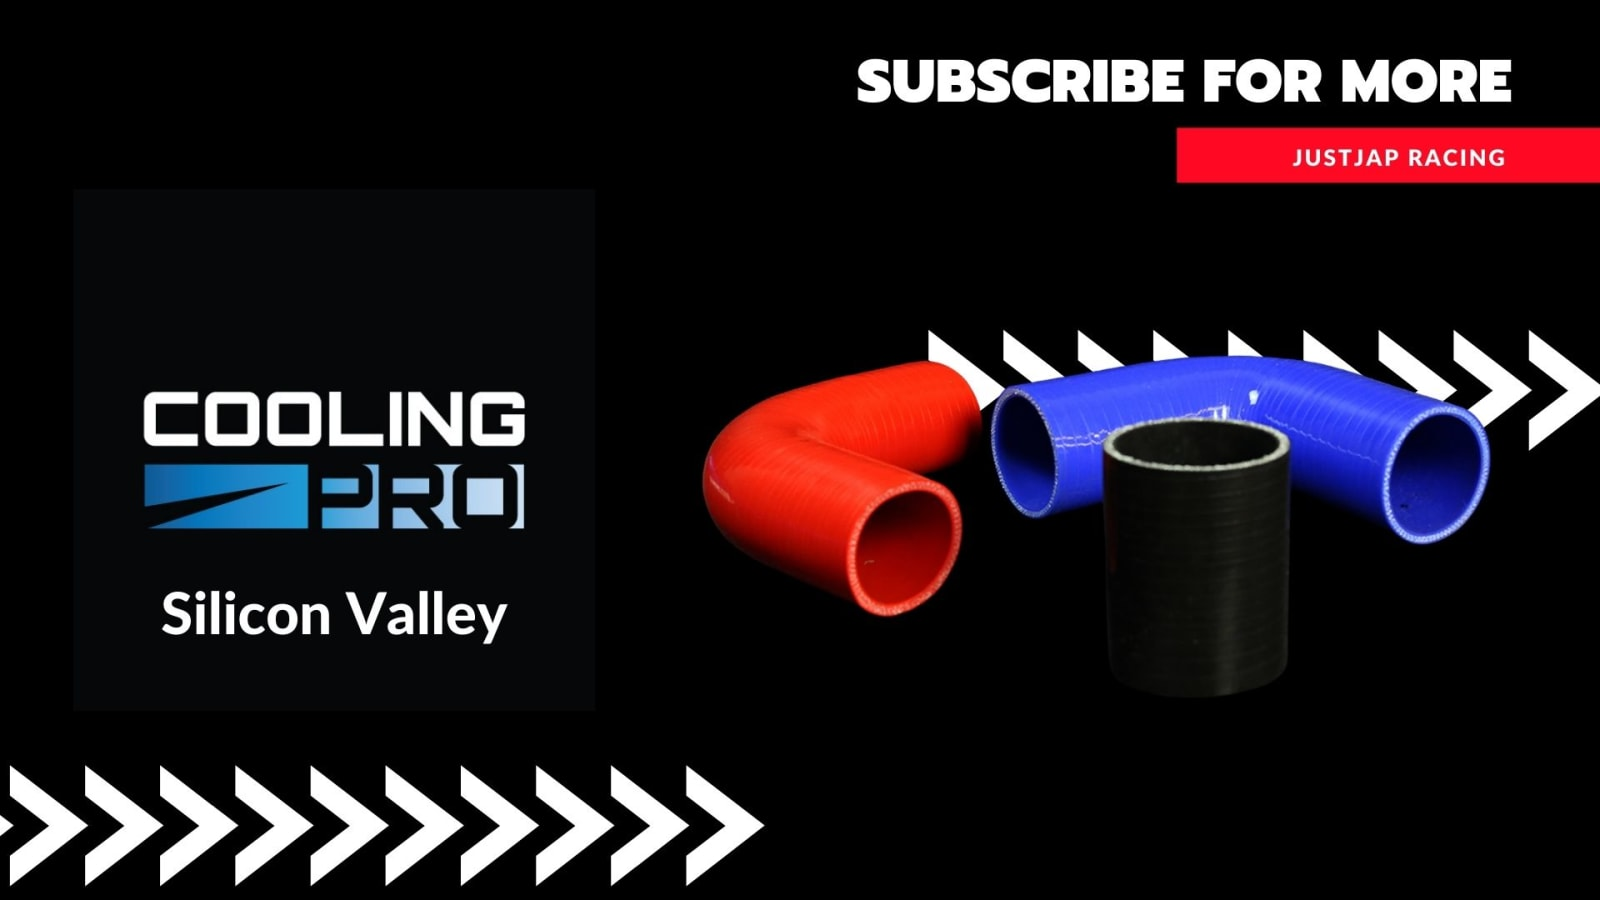 Cooling Pro Silicone 3 Inch / 76mm 180 Degree Bend Hose